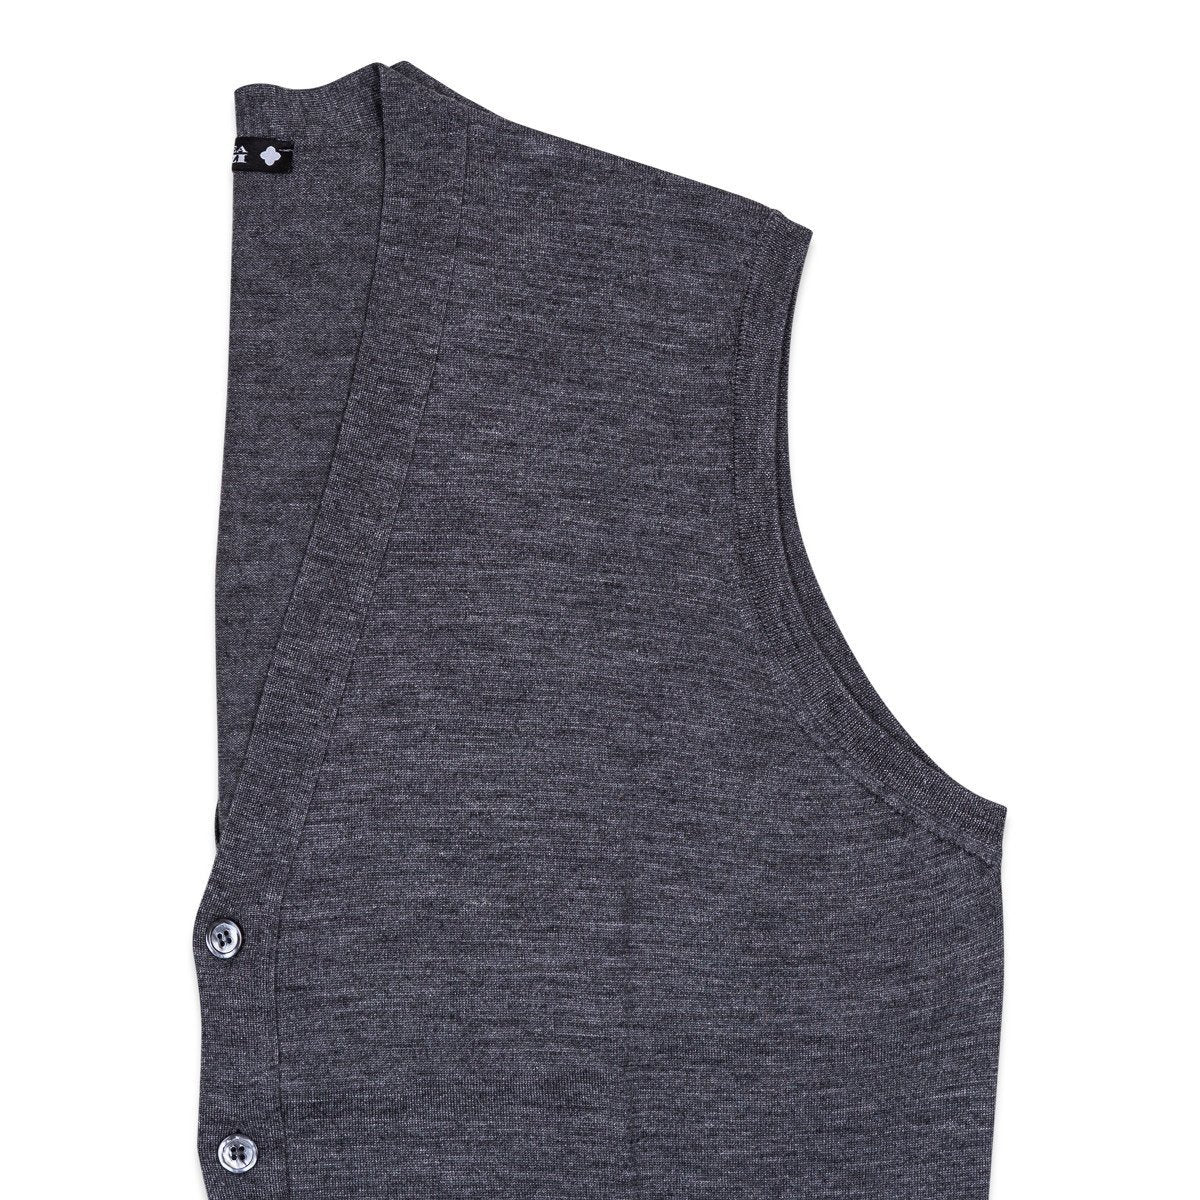 Andrea Fenzi - Vest, Knitwear, Grey Knitted, Knitwear | NEW TAILOR Webshop